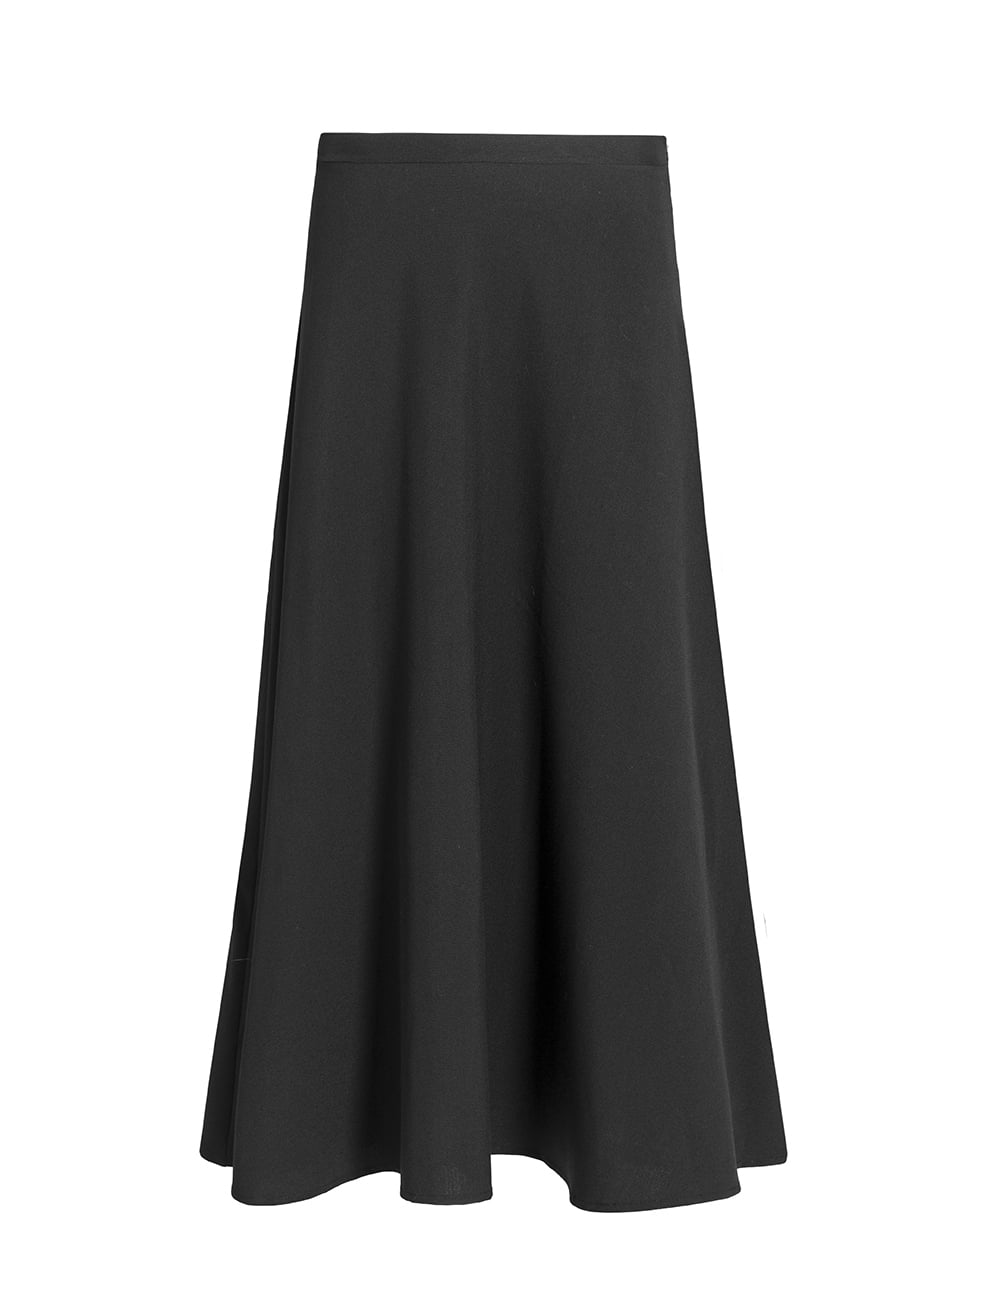 Vivien black maxi skirt, child - front view